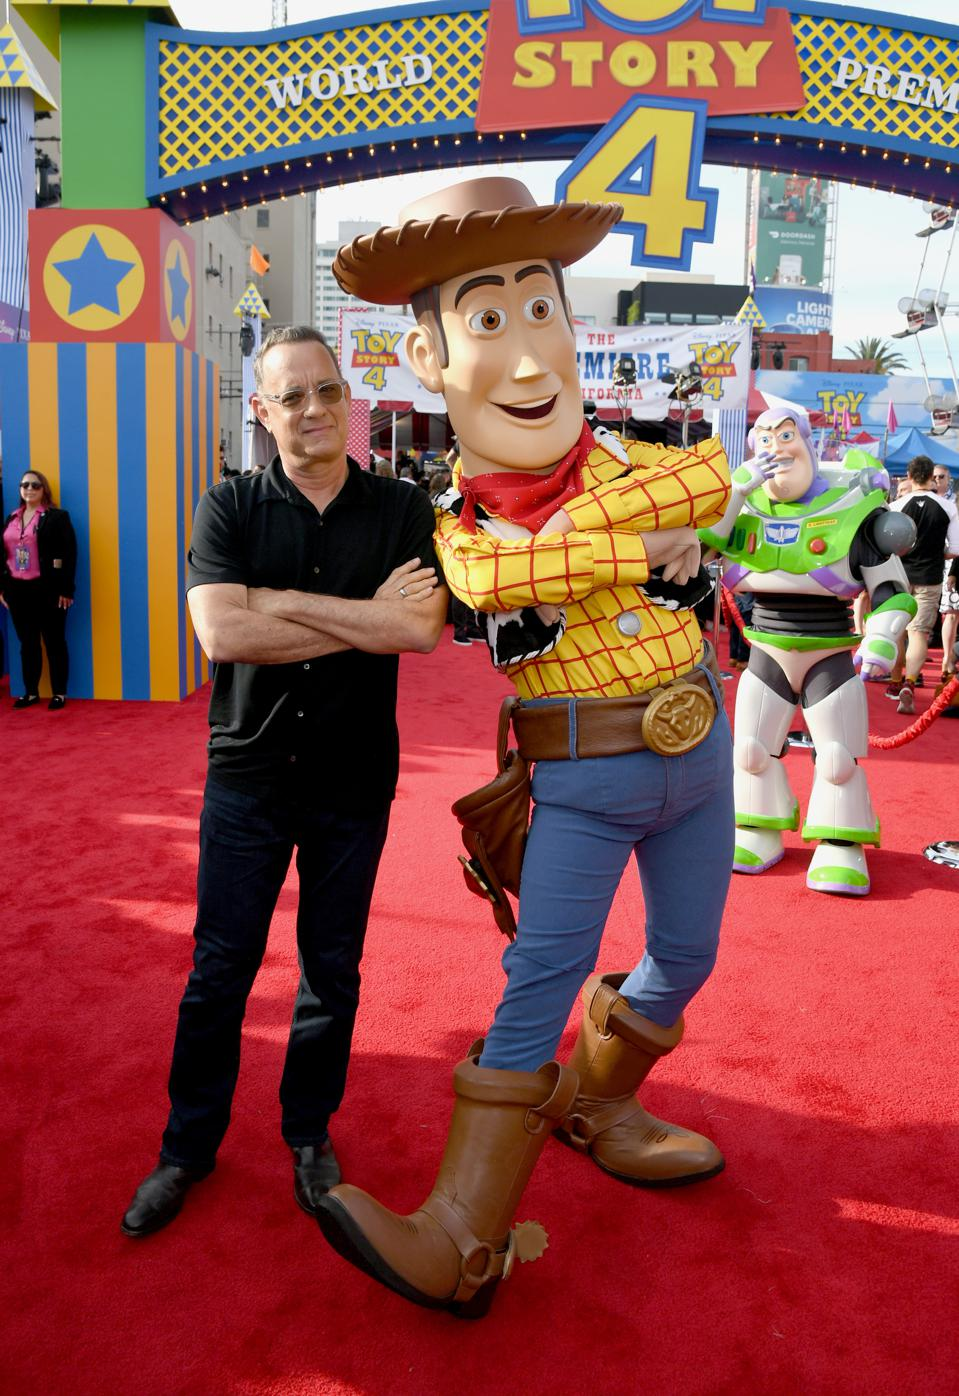 Premiere Of Disney And Pixar's ″Toy Story 4″ - Red Carpet